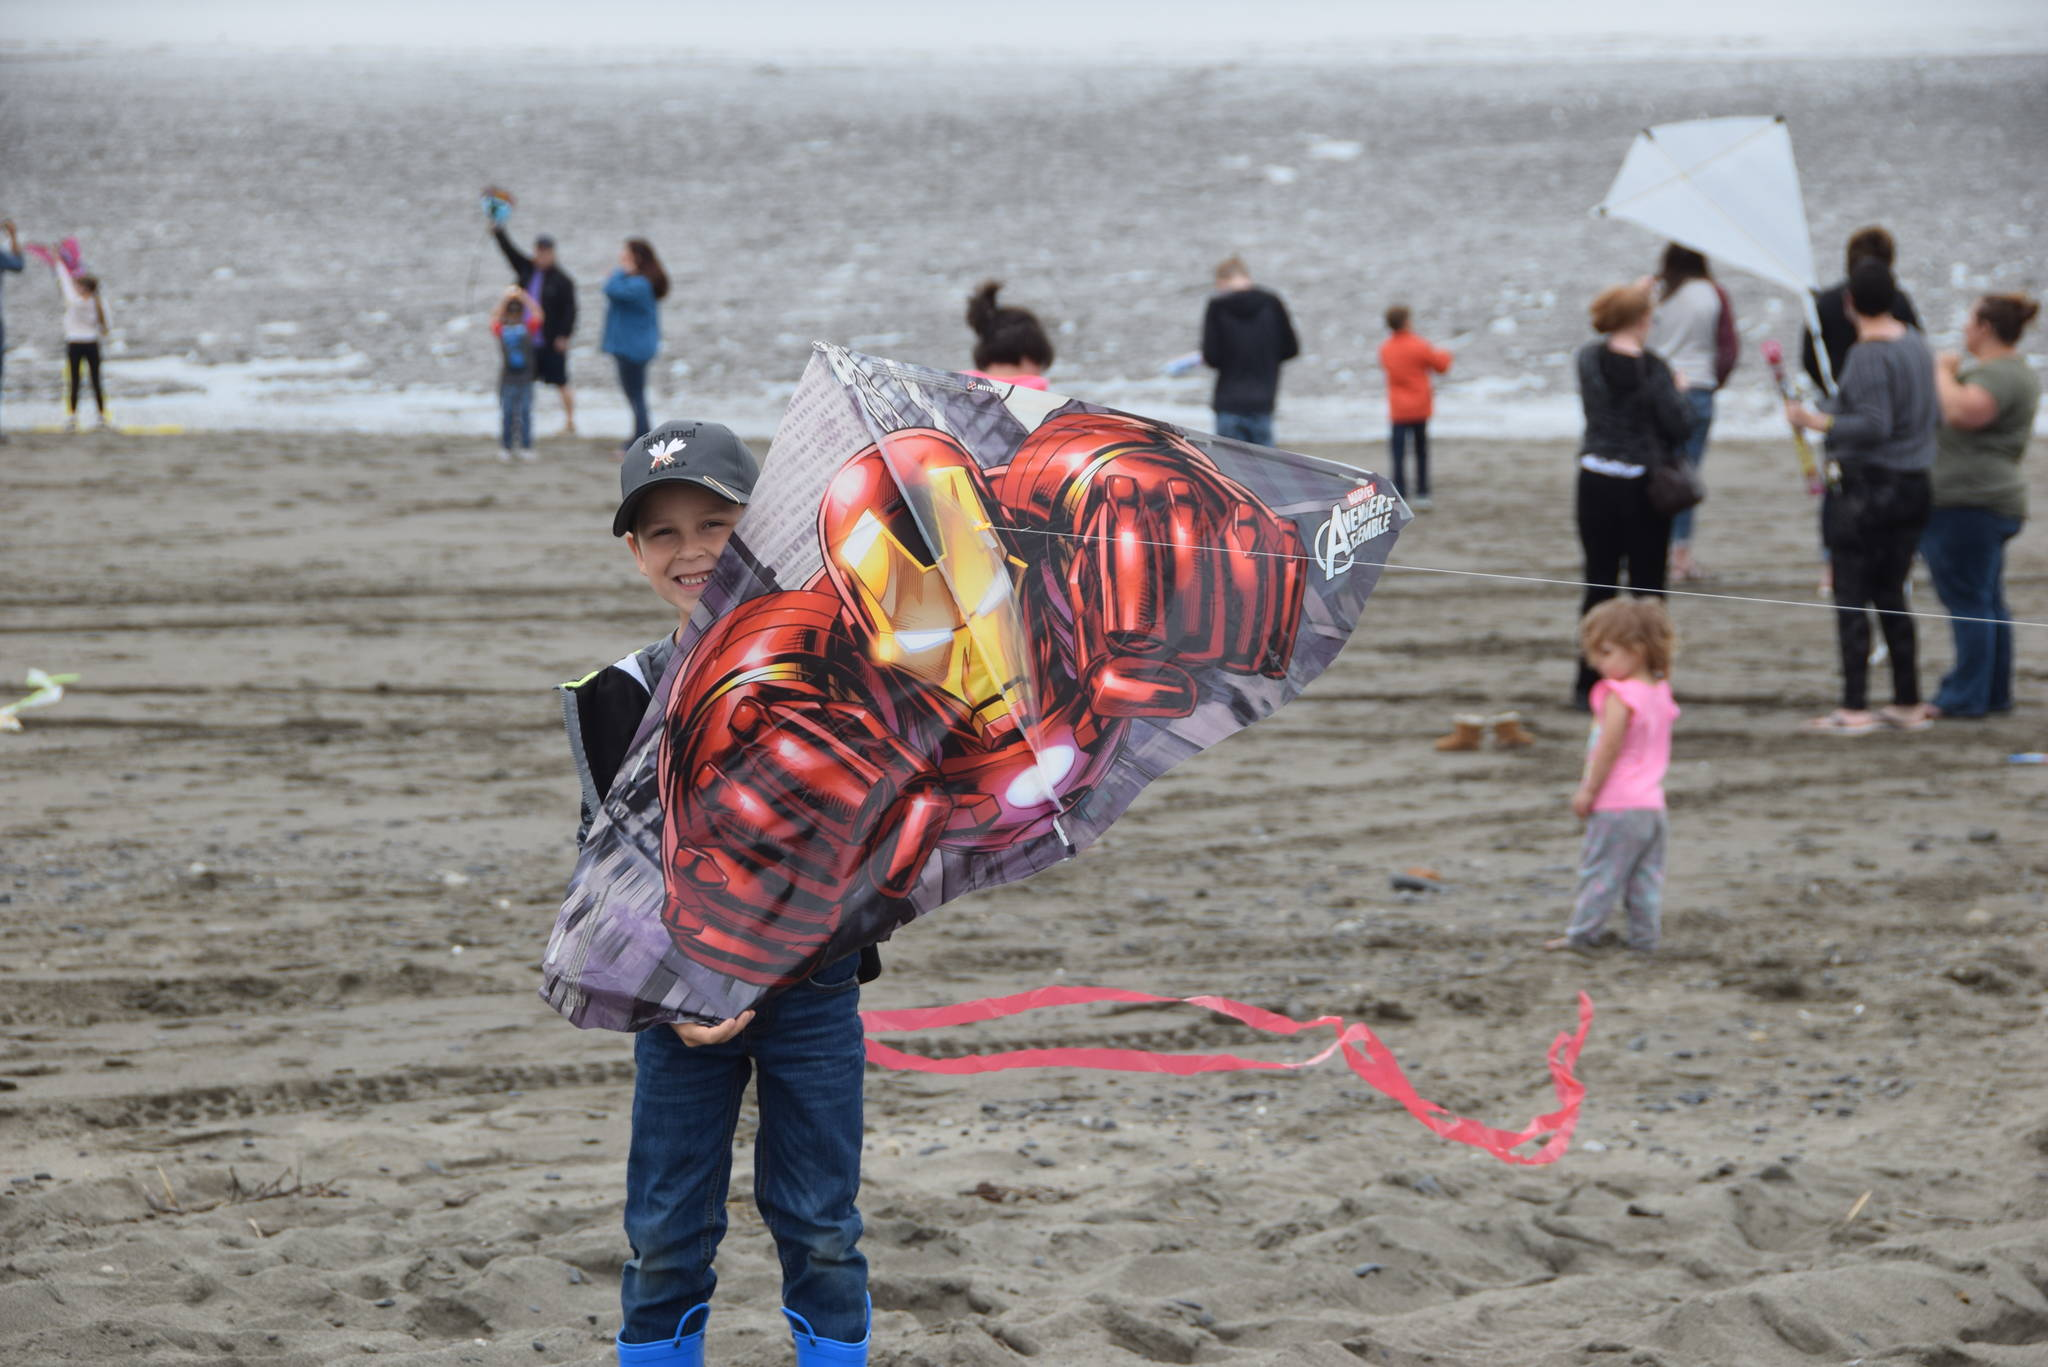 Jasper Webb from Kenai shows off his Iron Man kite during the first Kenai Kite Festival on the Kenai North Beach in Alaska on Saturday, June 15, 2019. (Photo by Brian Mazurek/Peninsula Clarion)